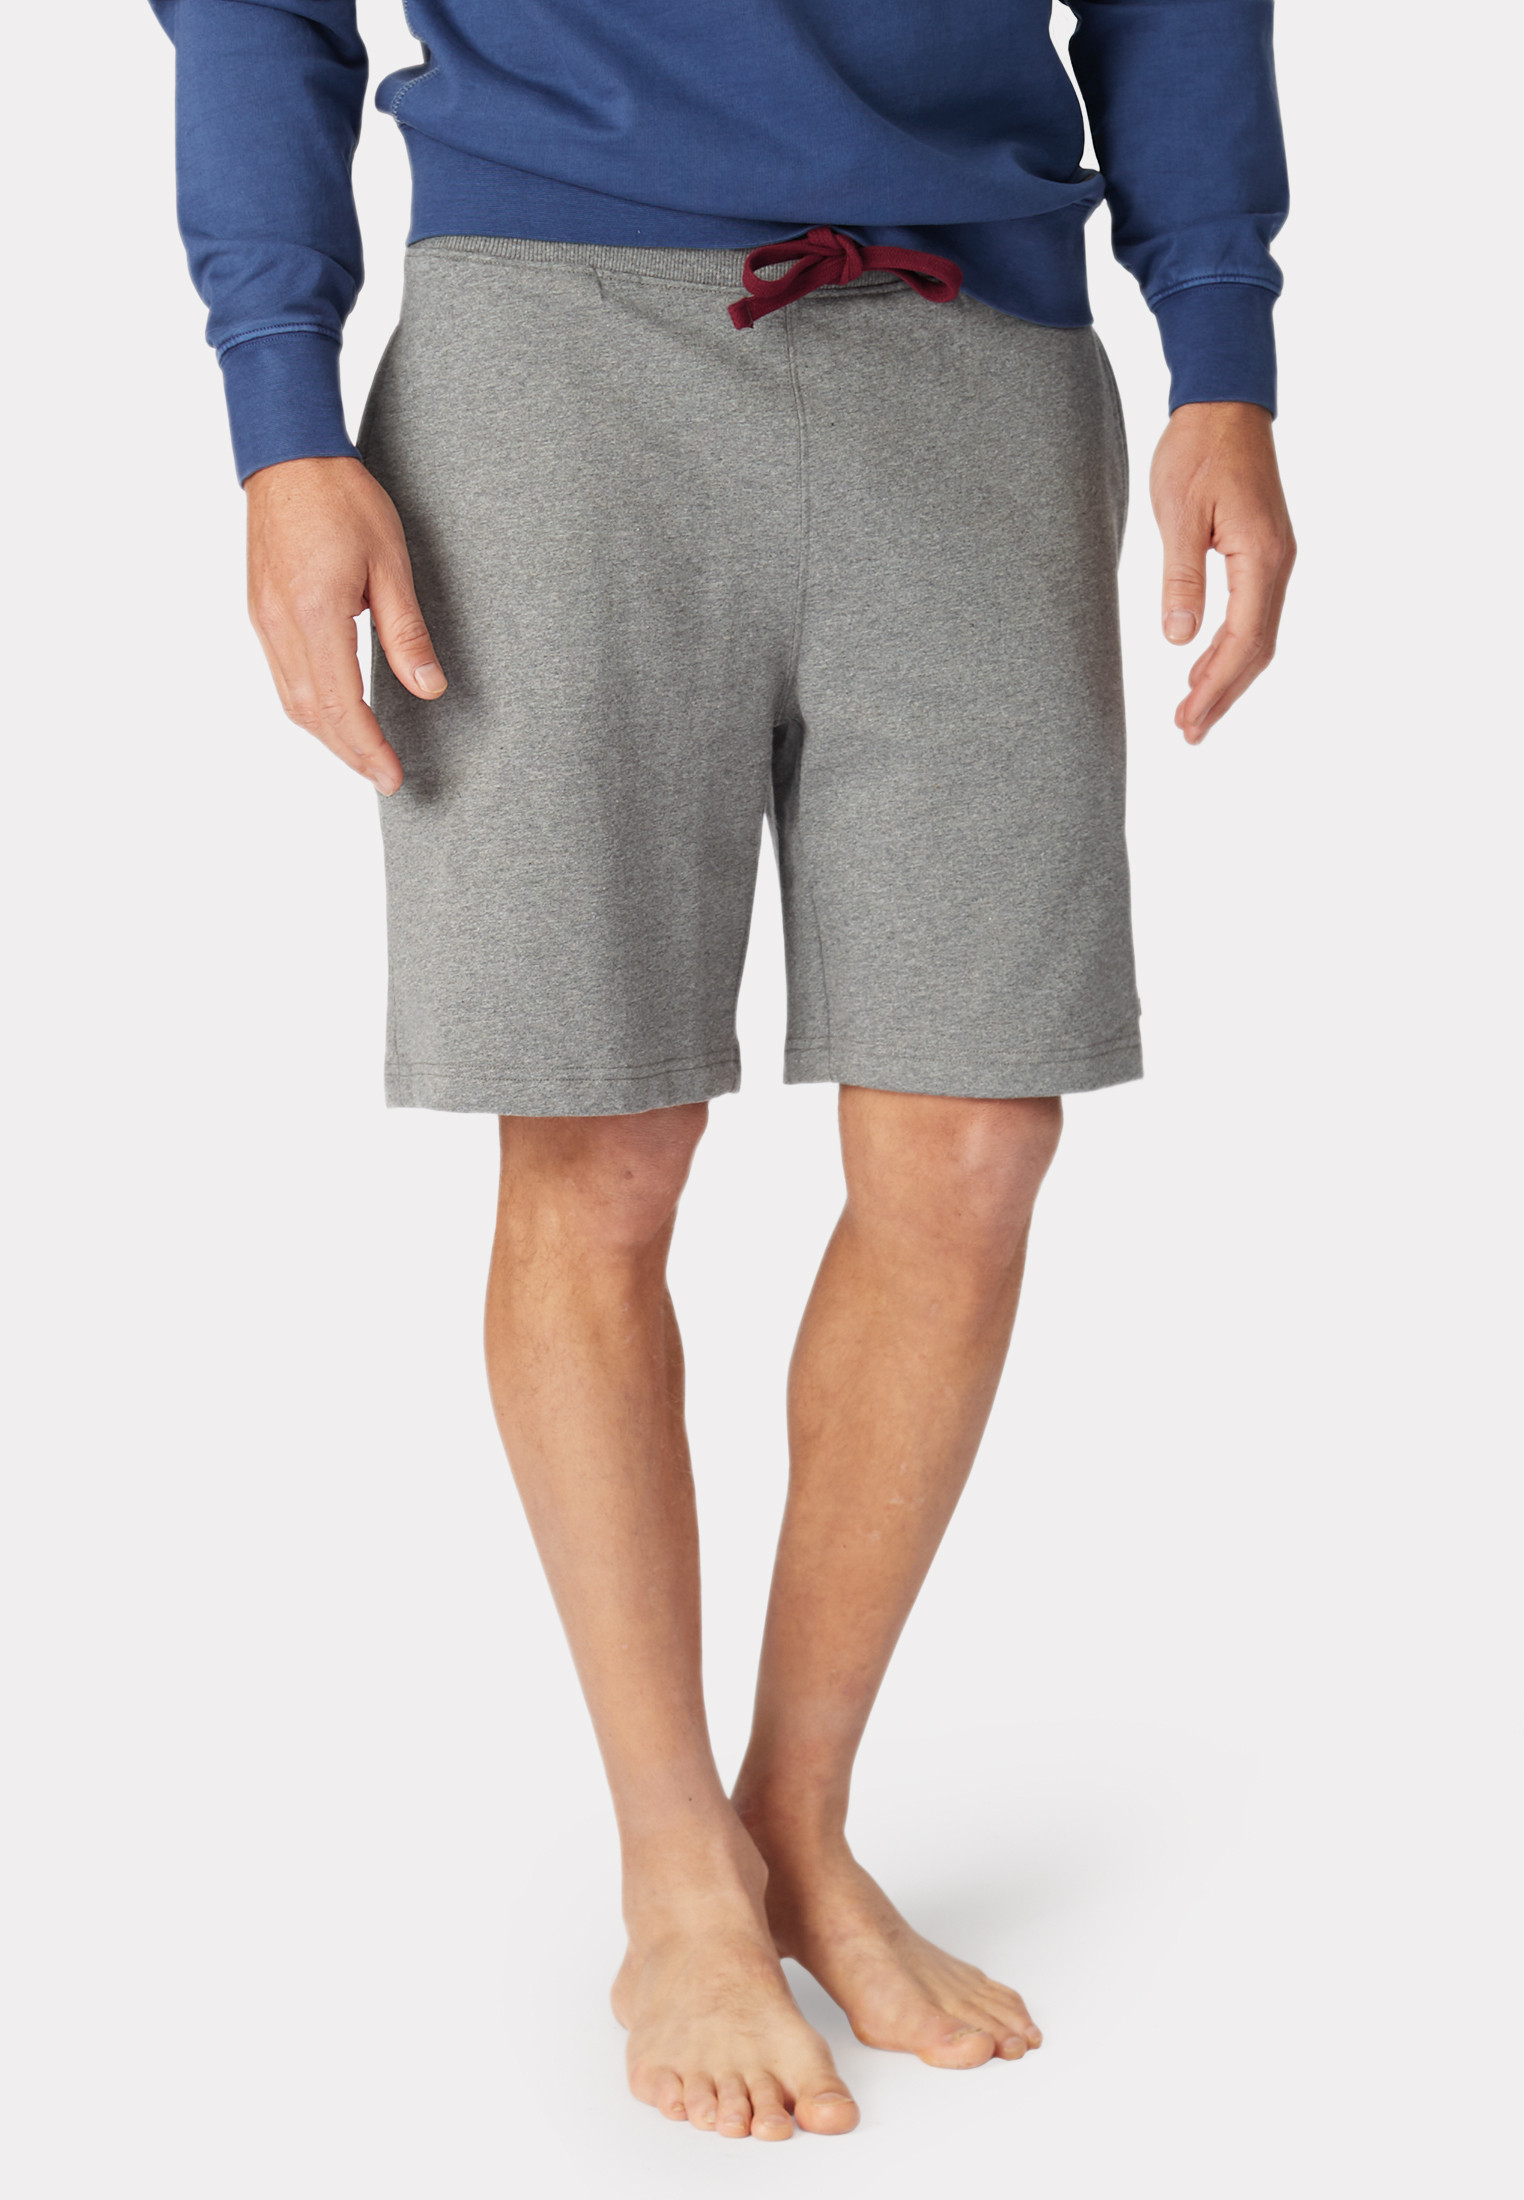 Newcastle Silver Grey Jog Shorts